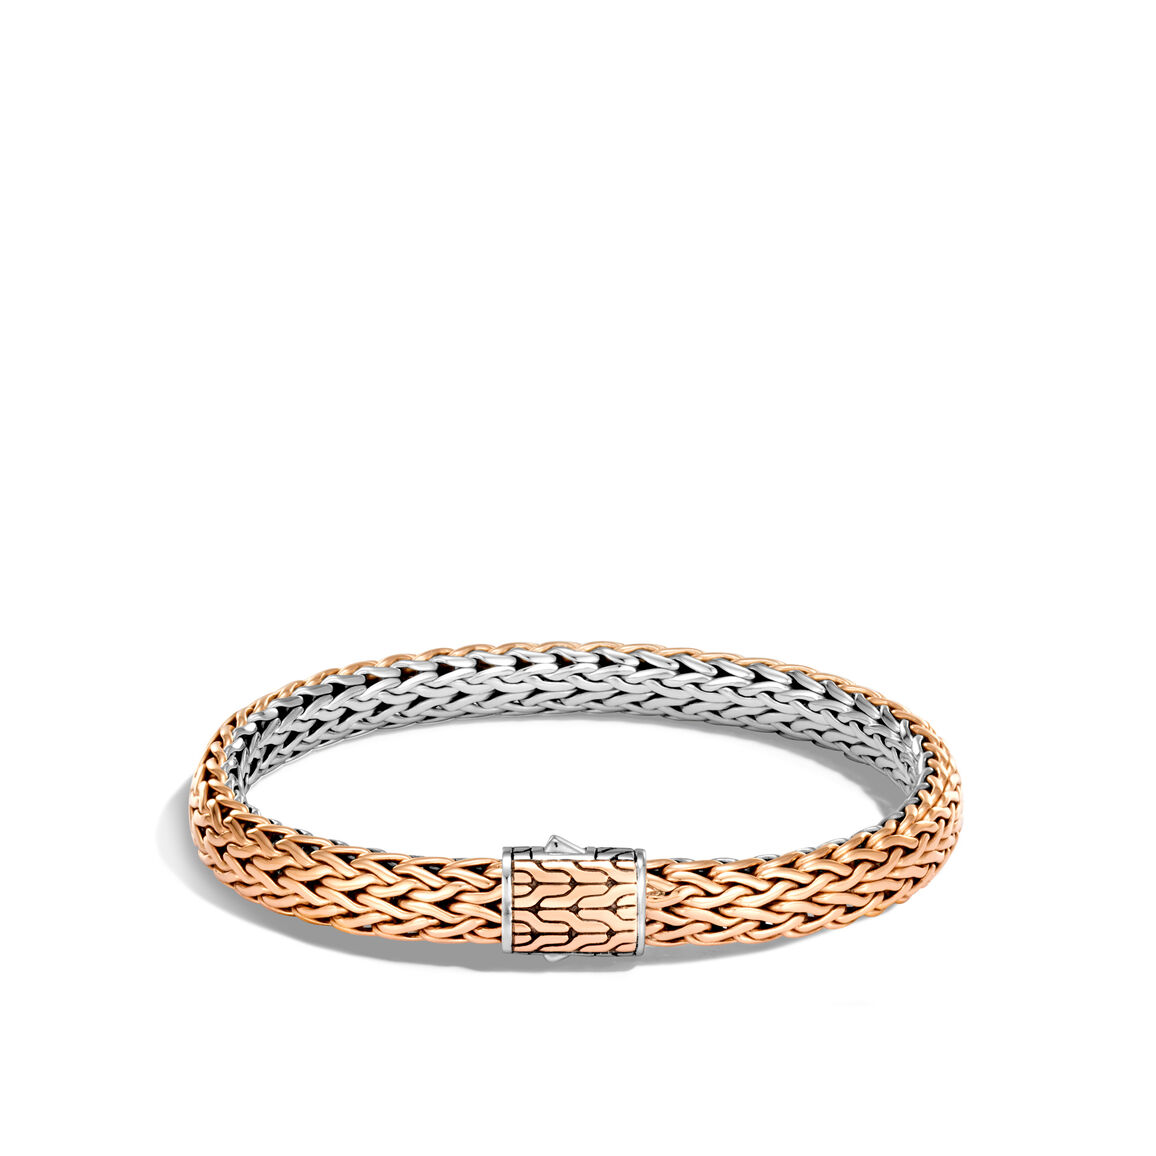 Classic Chain 7.5MM Reversible Bracelet in Silver and Bronze